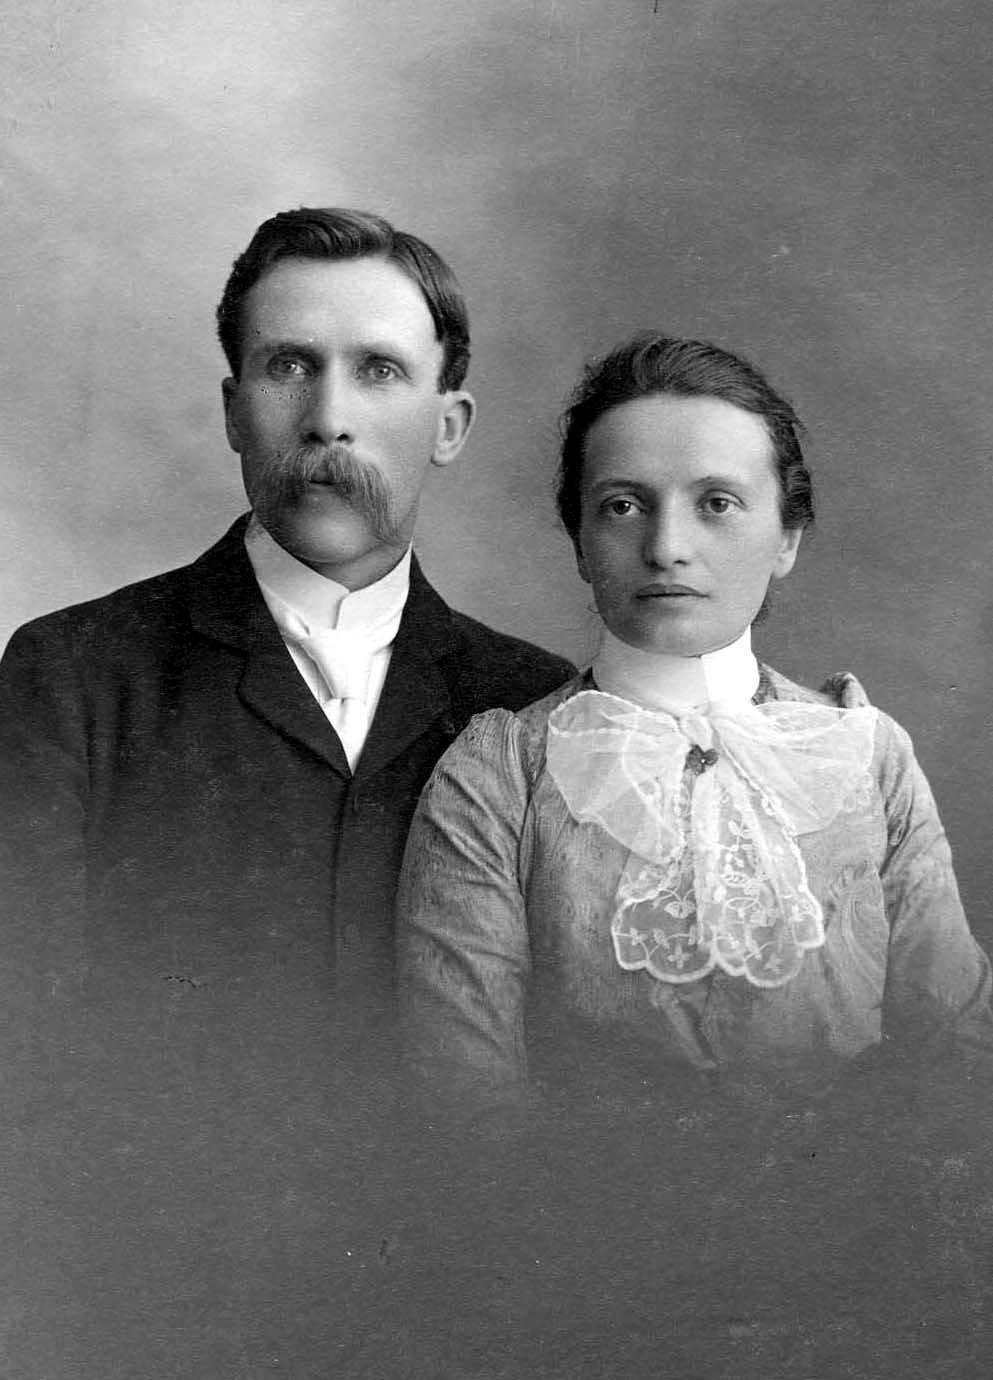 Wedding Photograph of Alice Breckon and Horace Wrinch, 1900